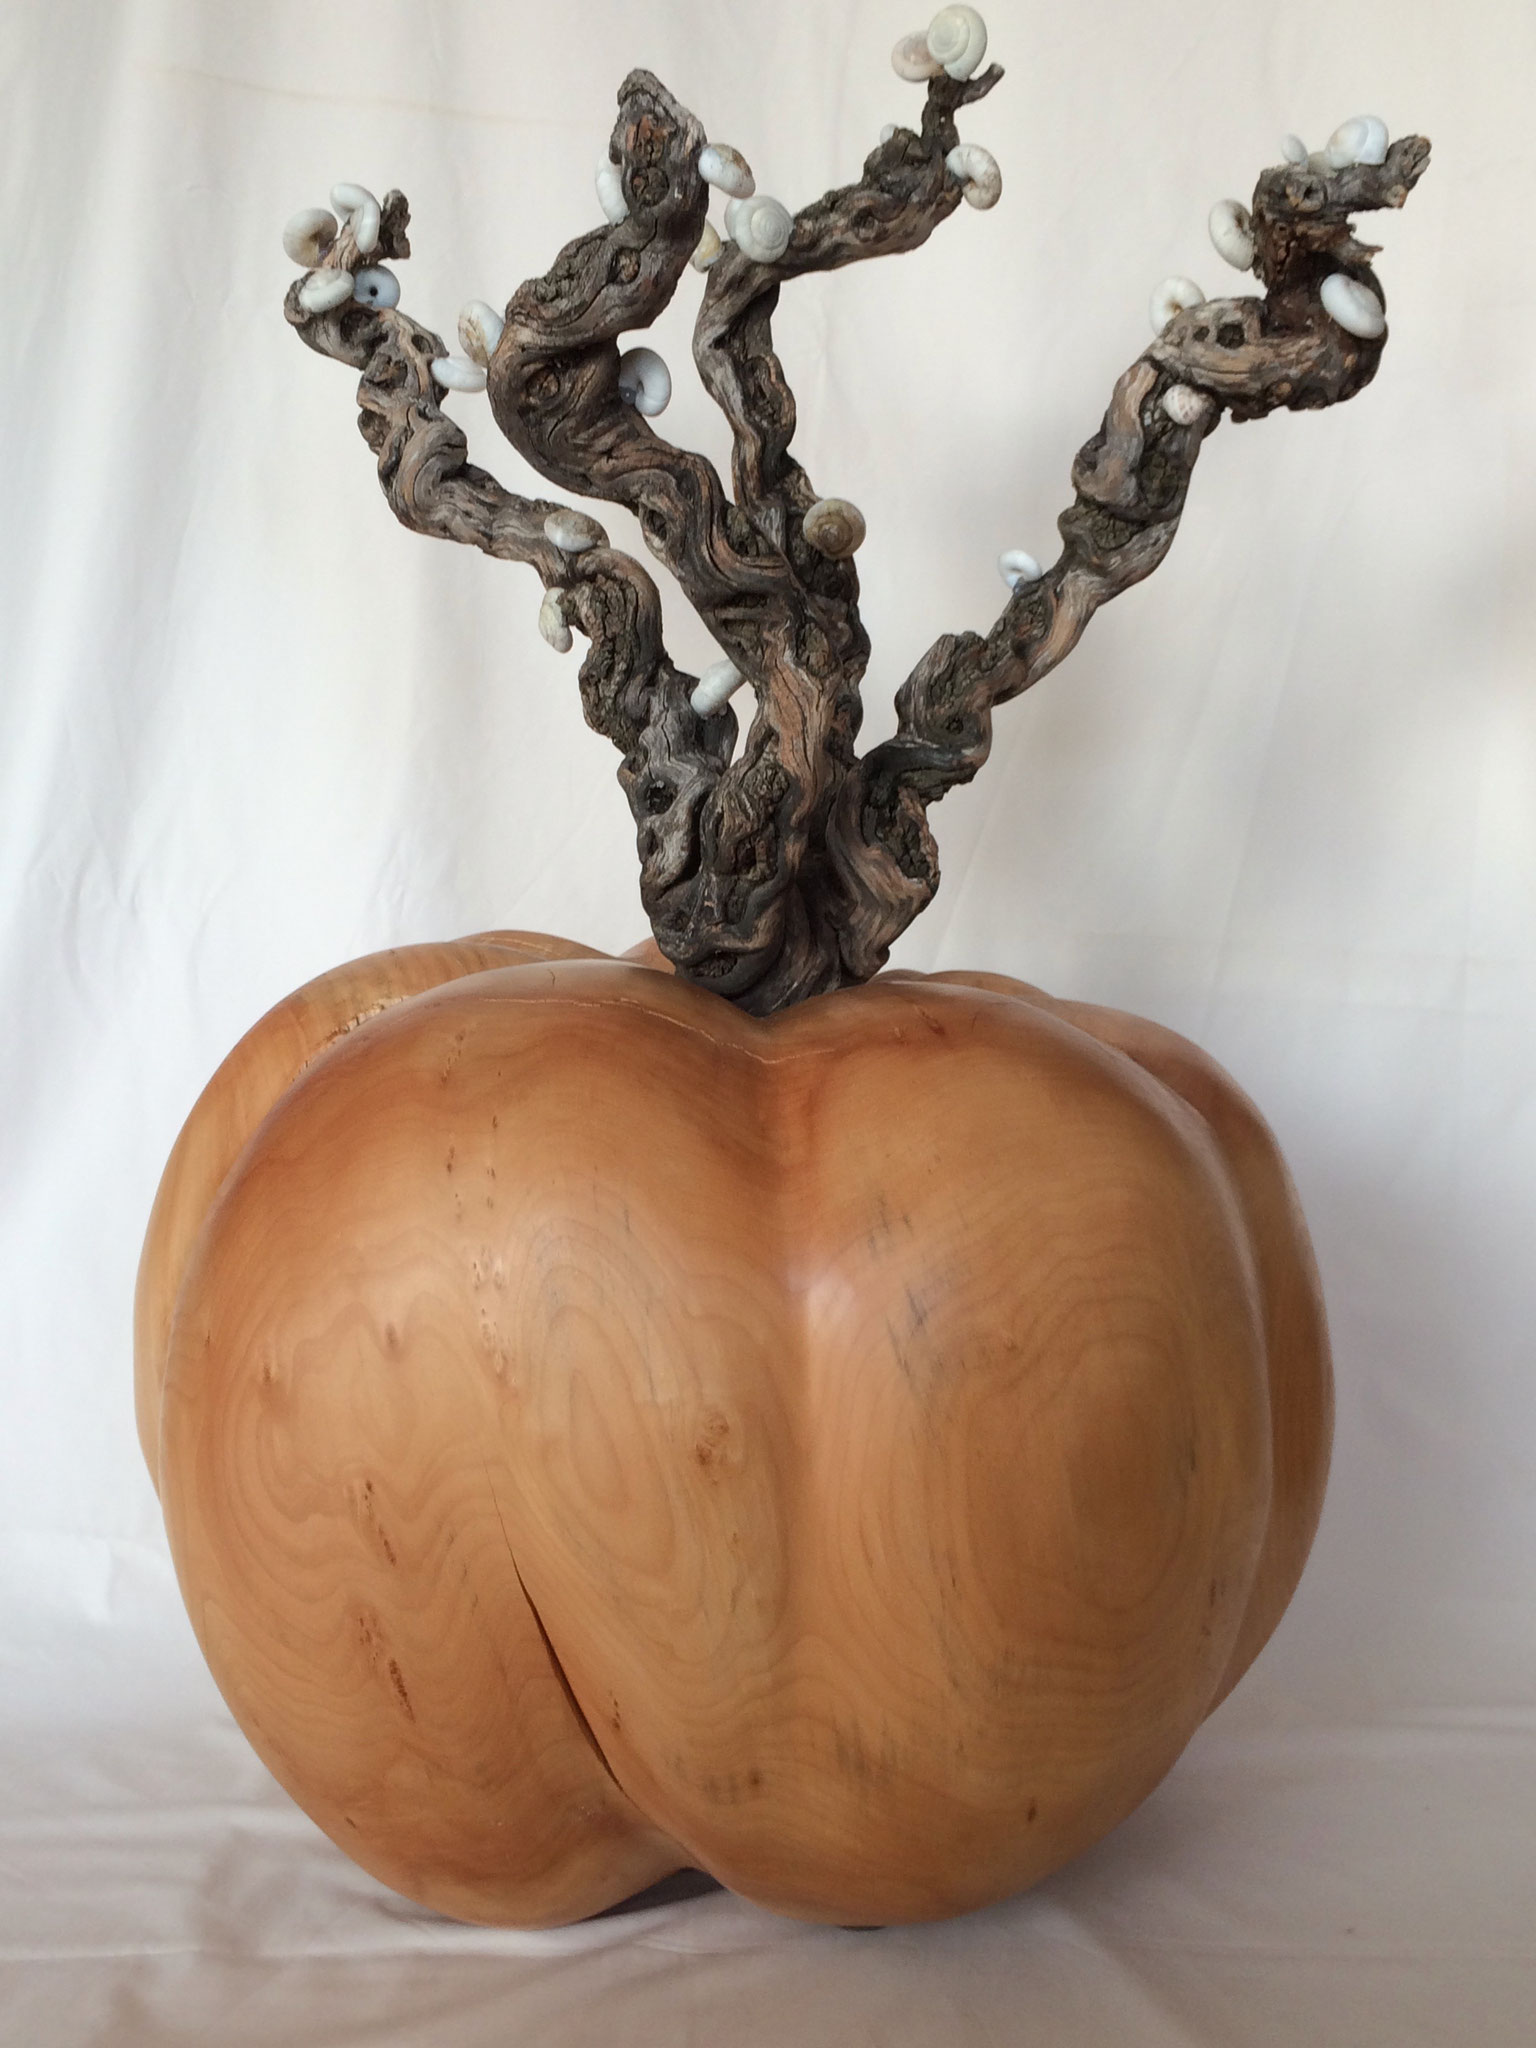 Pumpkin with vine covert with  snails (65x90x65)